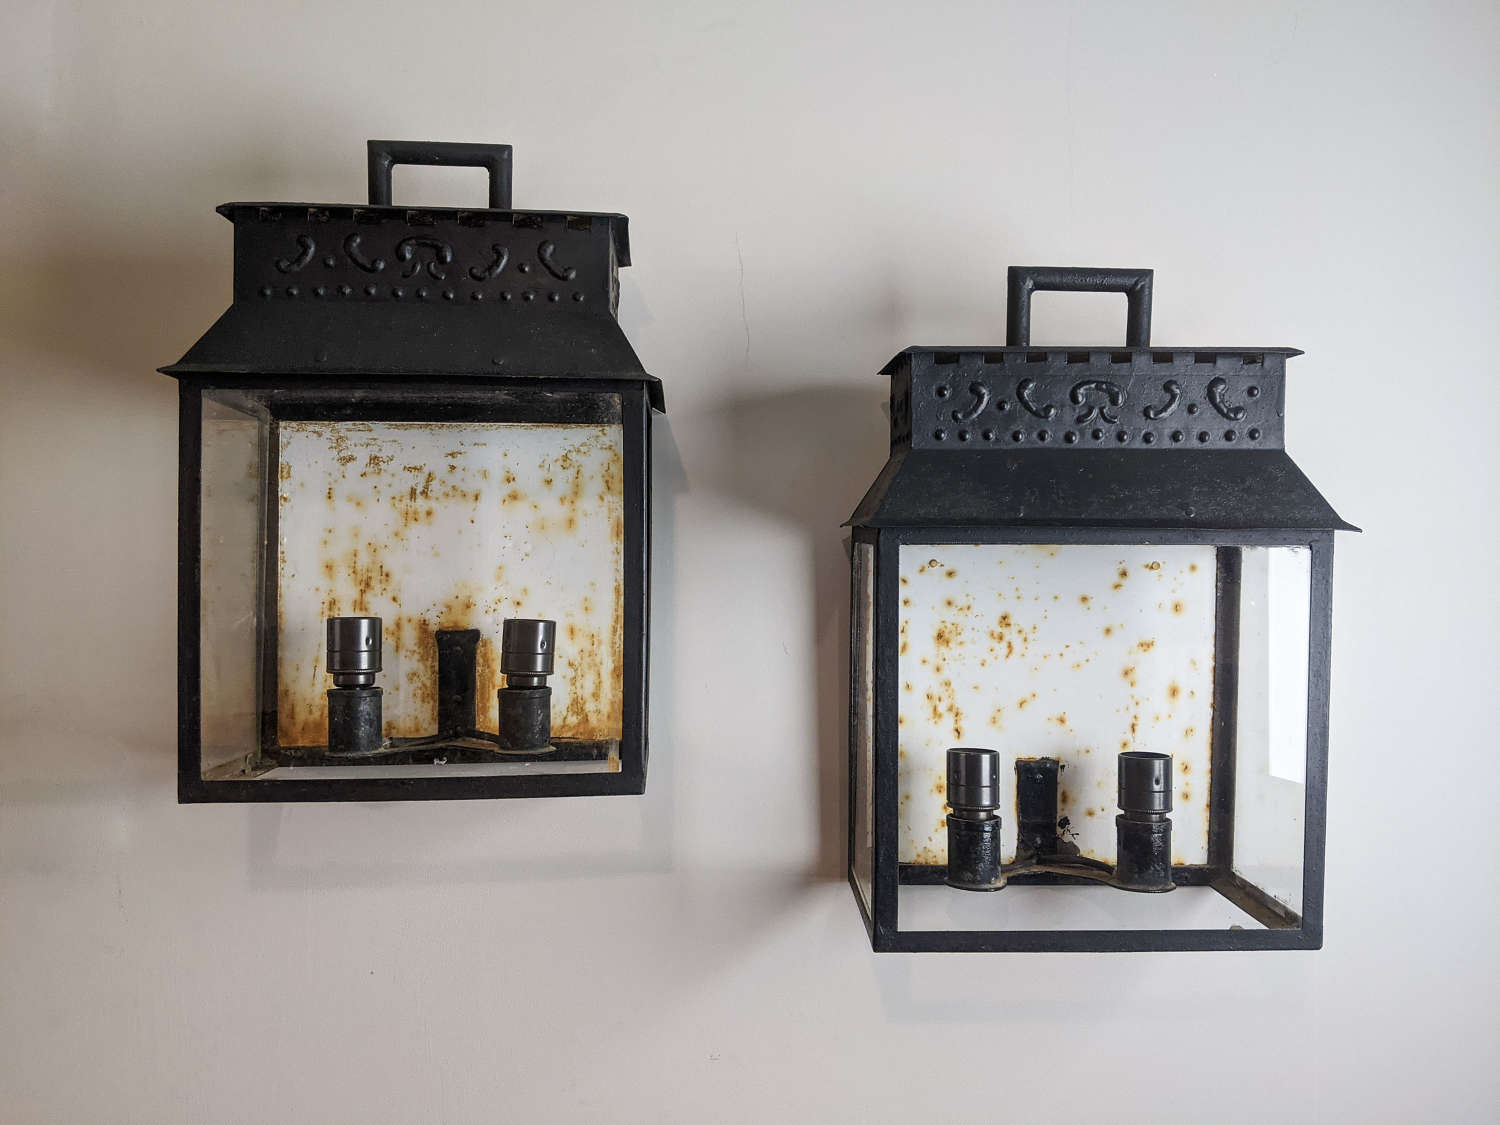 C.1930 A Pair of Tole Wall Lanterns - rewired